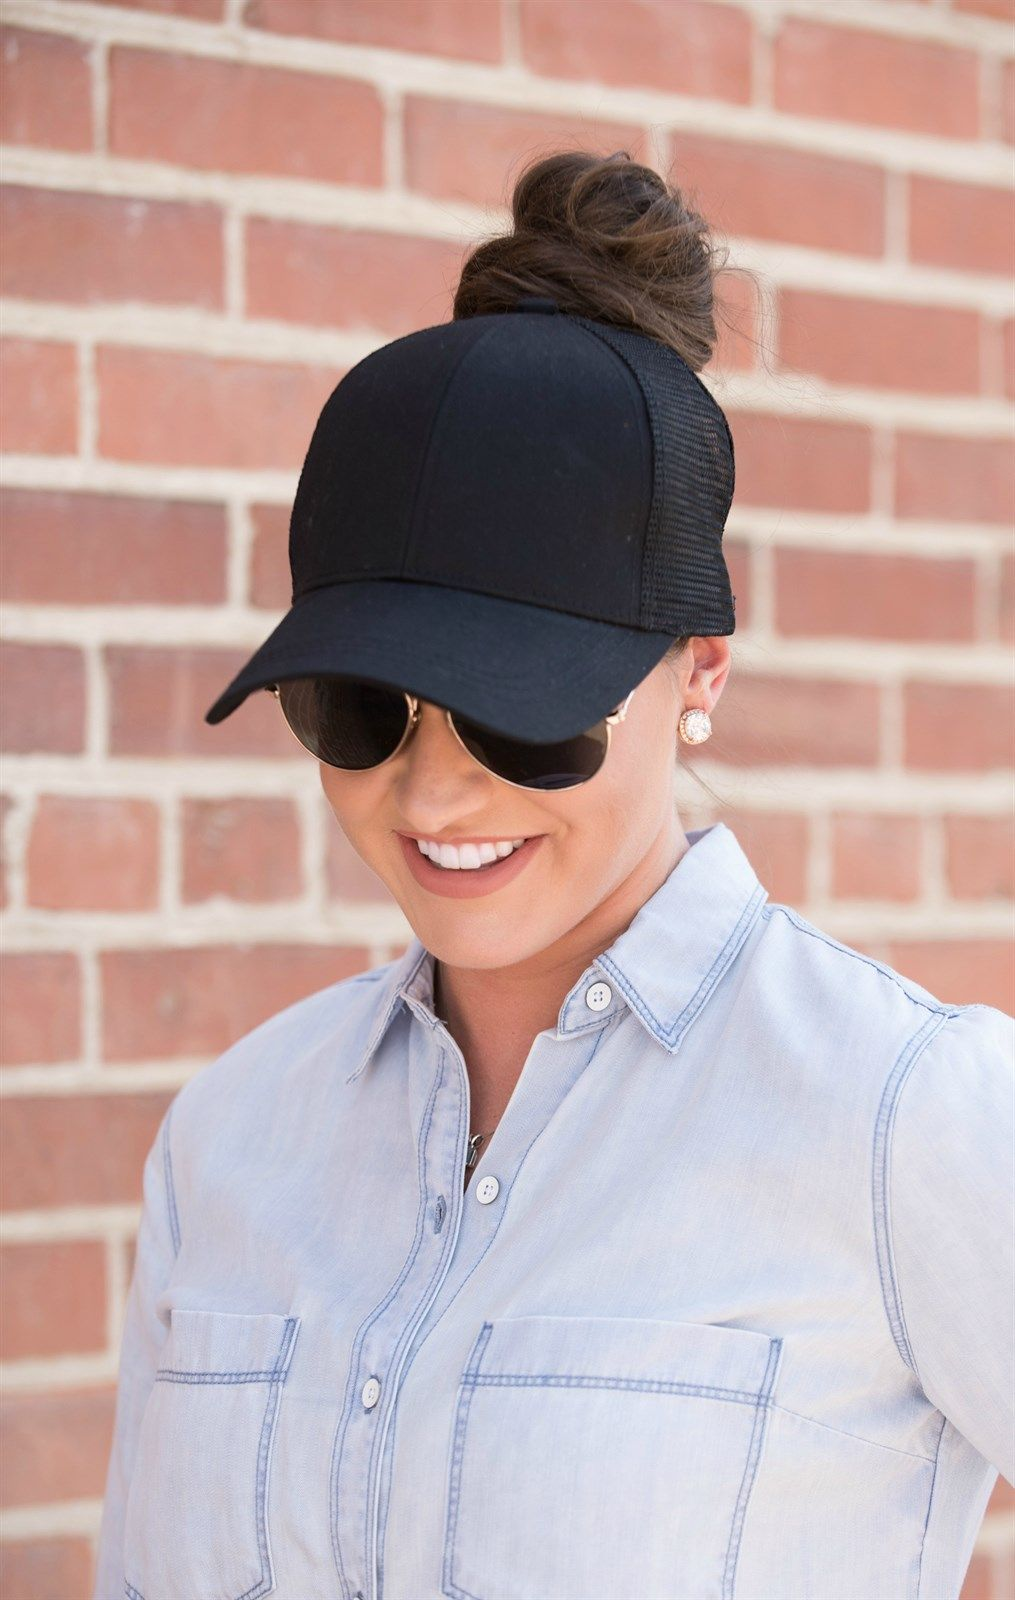 Our C.C brand top knot trucker hats have all the function of a regular ball  cap 87f7c7871cc